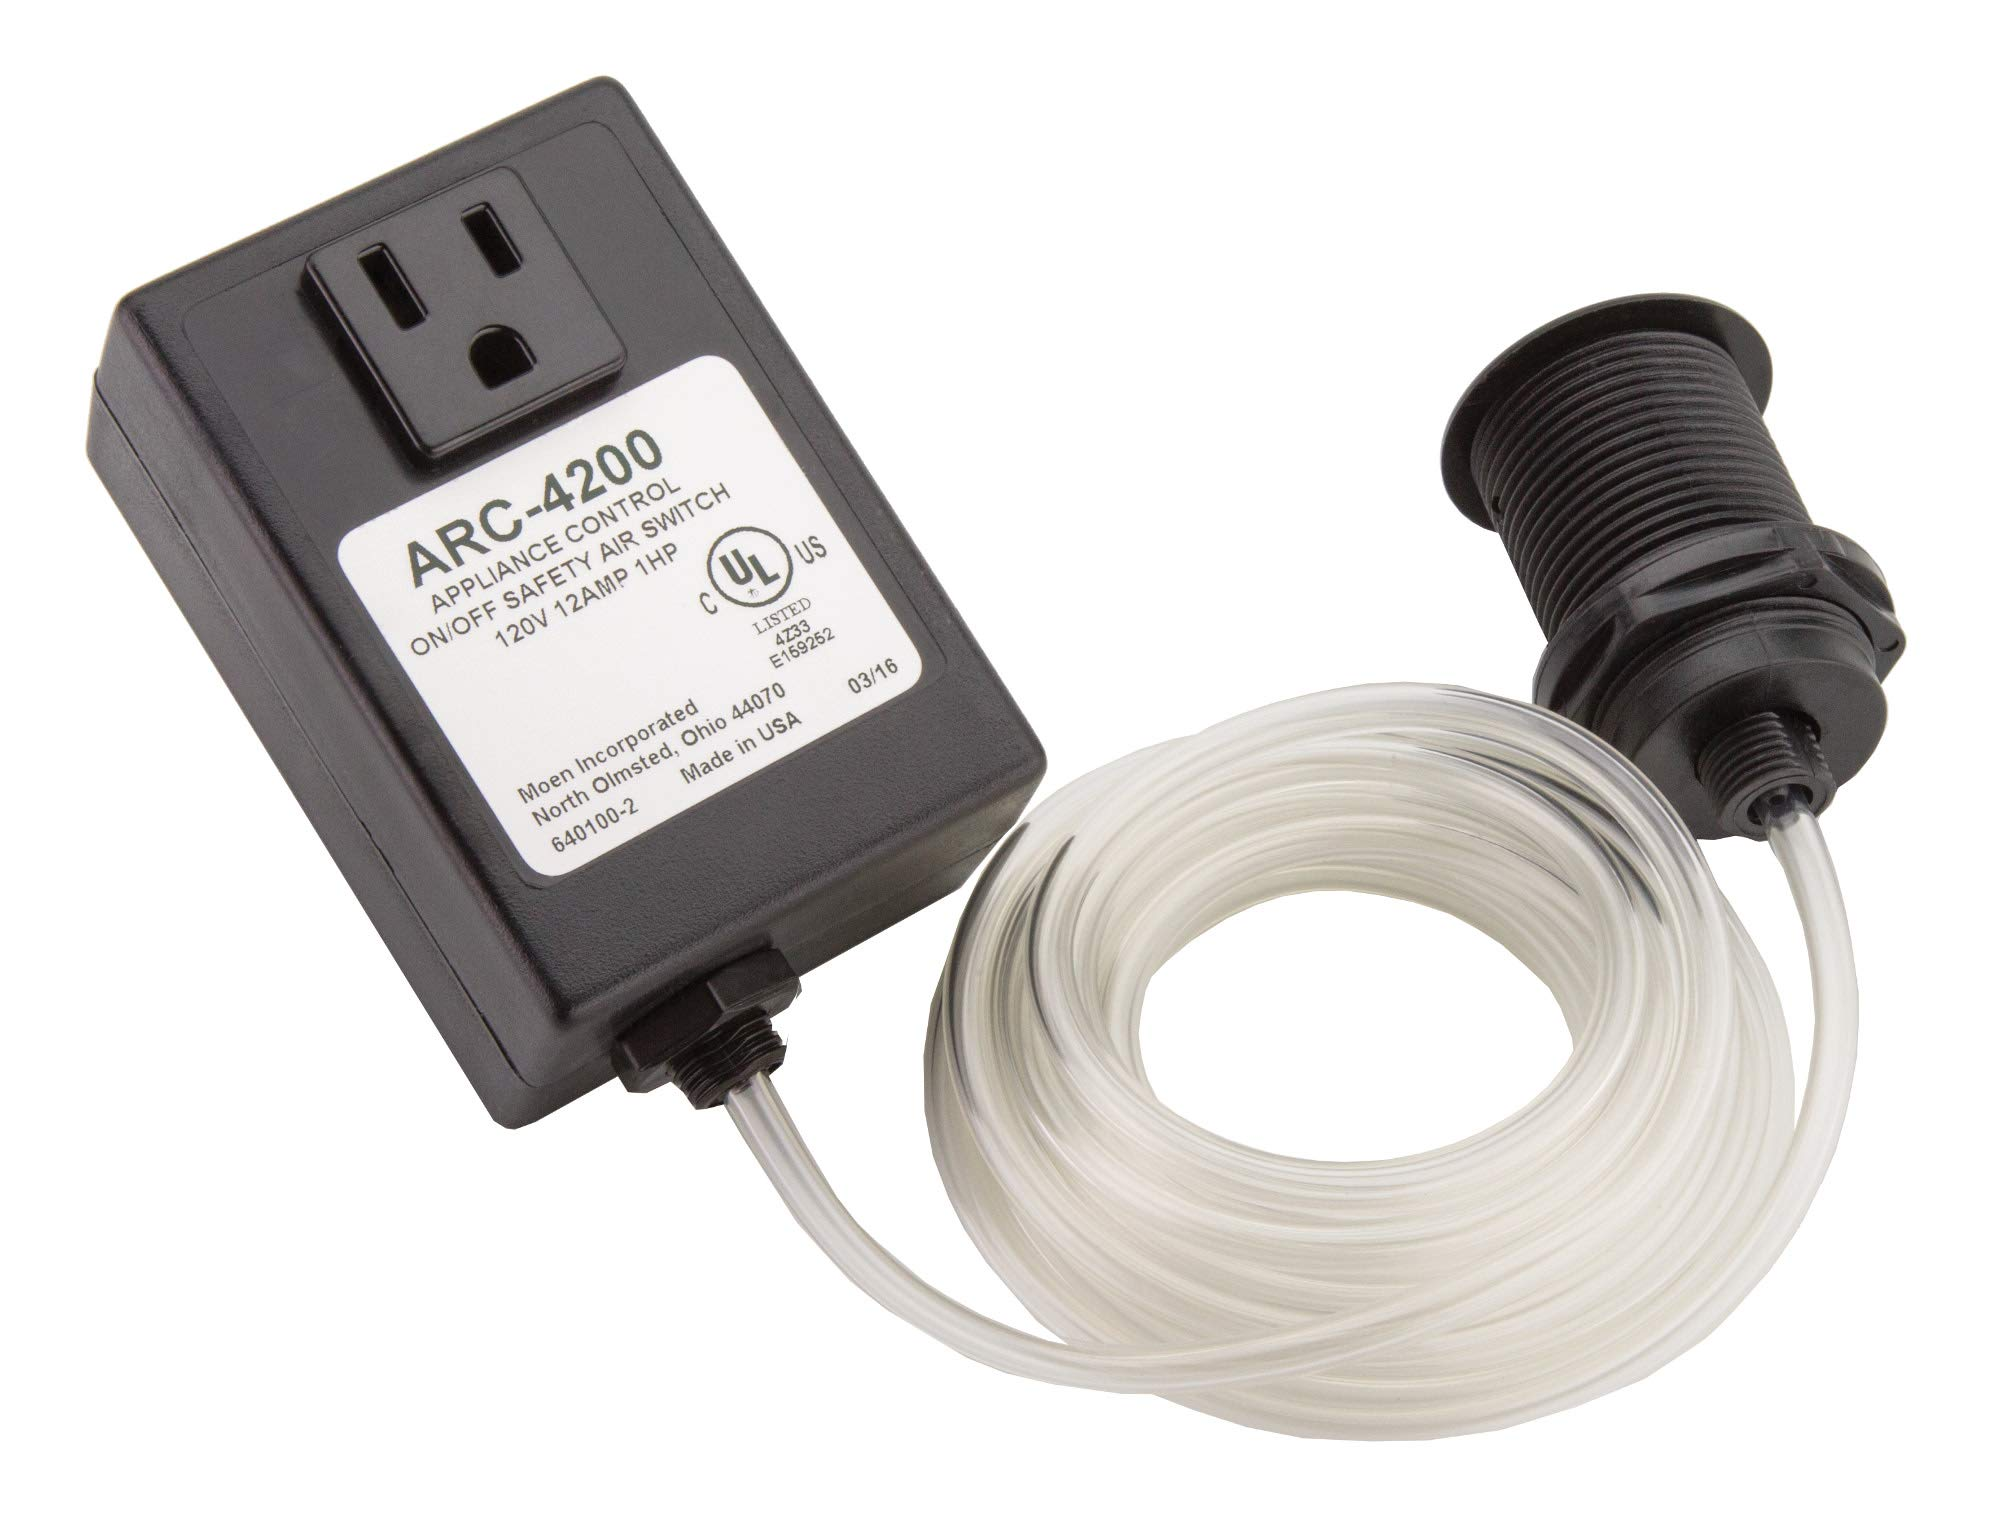 Waste King Garbage Disposal Air Switch Base and Control Unit - ARC-4200 by Waste King